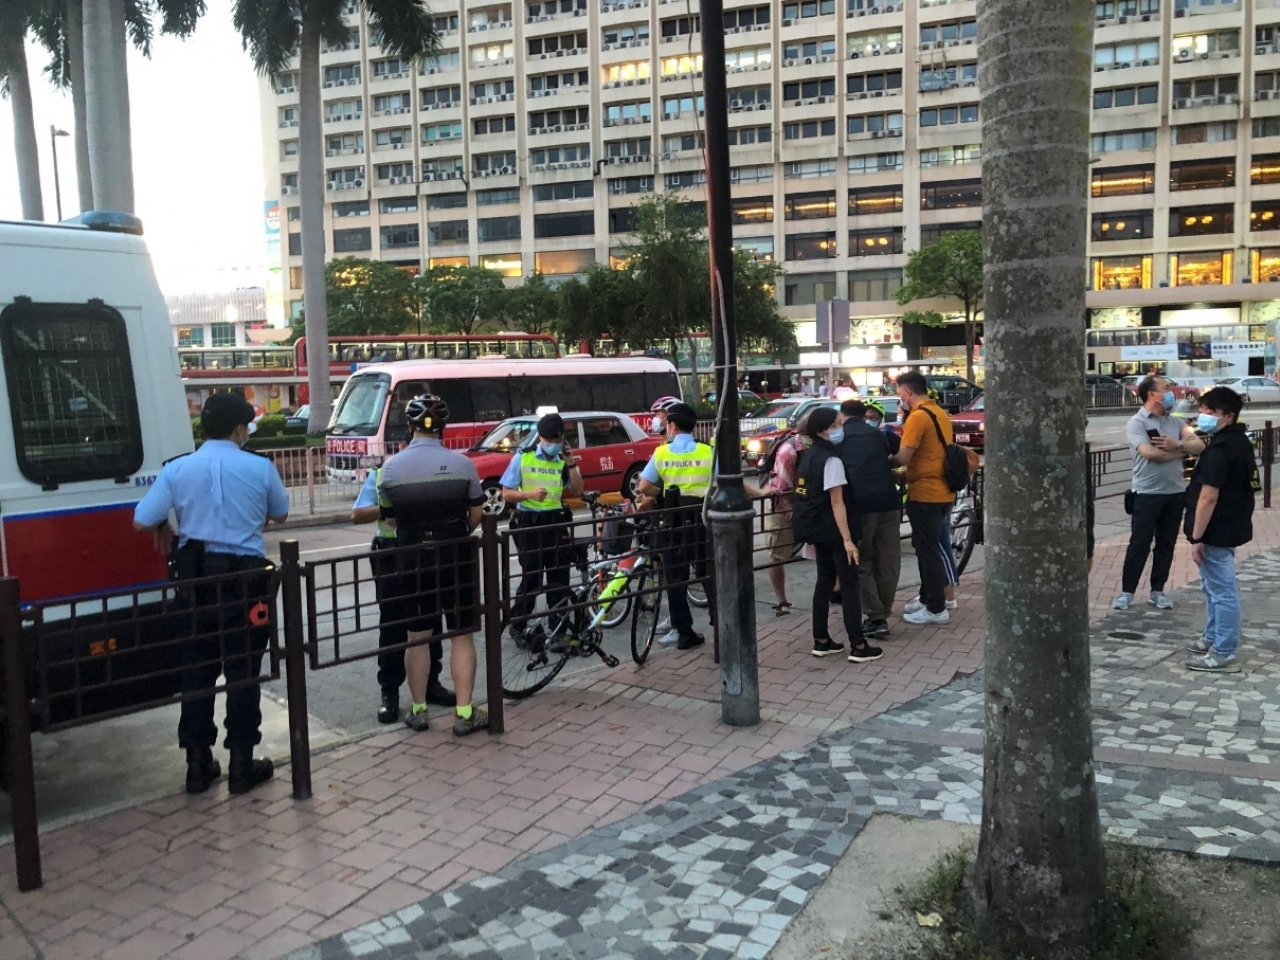 One group of cyclists is stopped by police officers near the start of the 'Ride of Silence' route near Tsim Sha Tsui. Photo supplied by Transit Jam